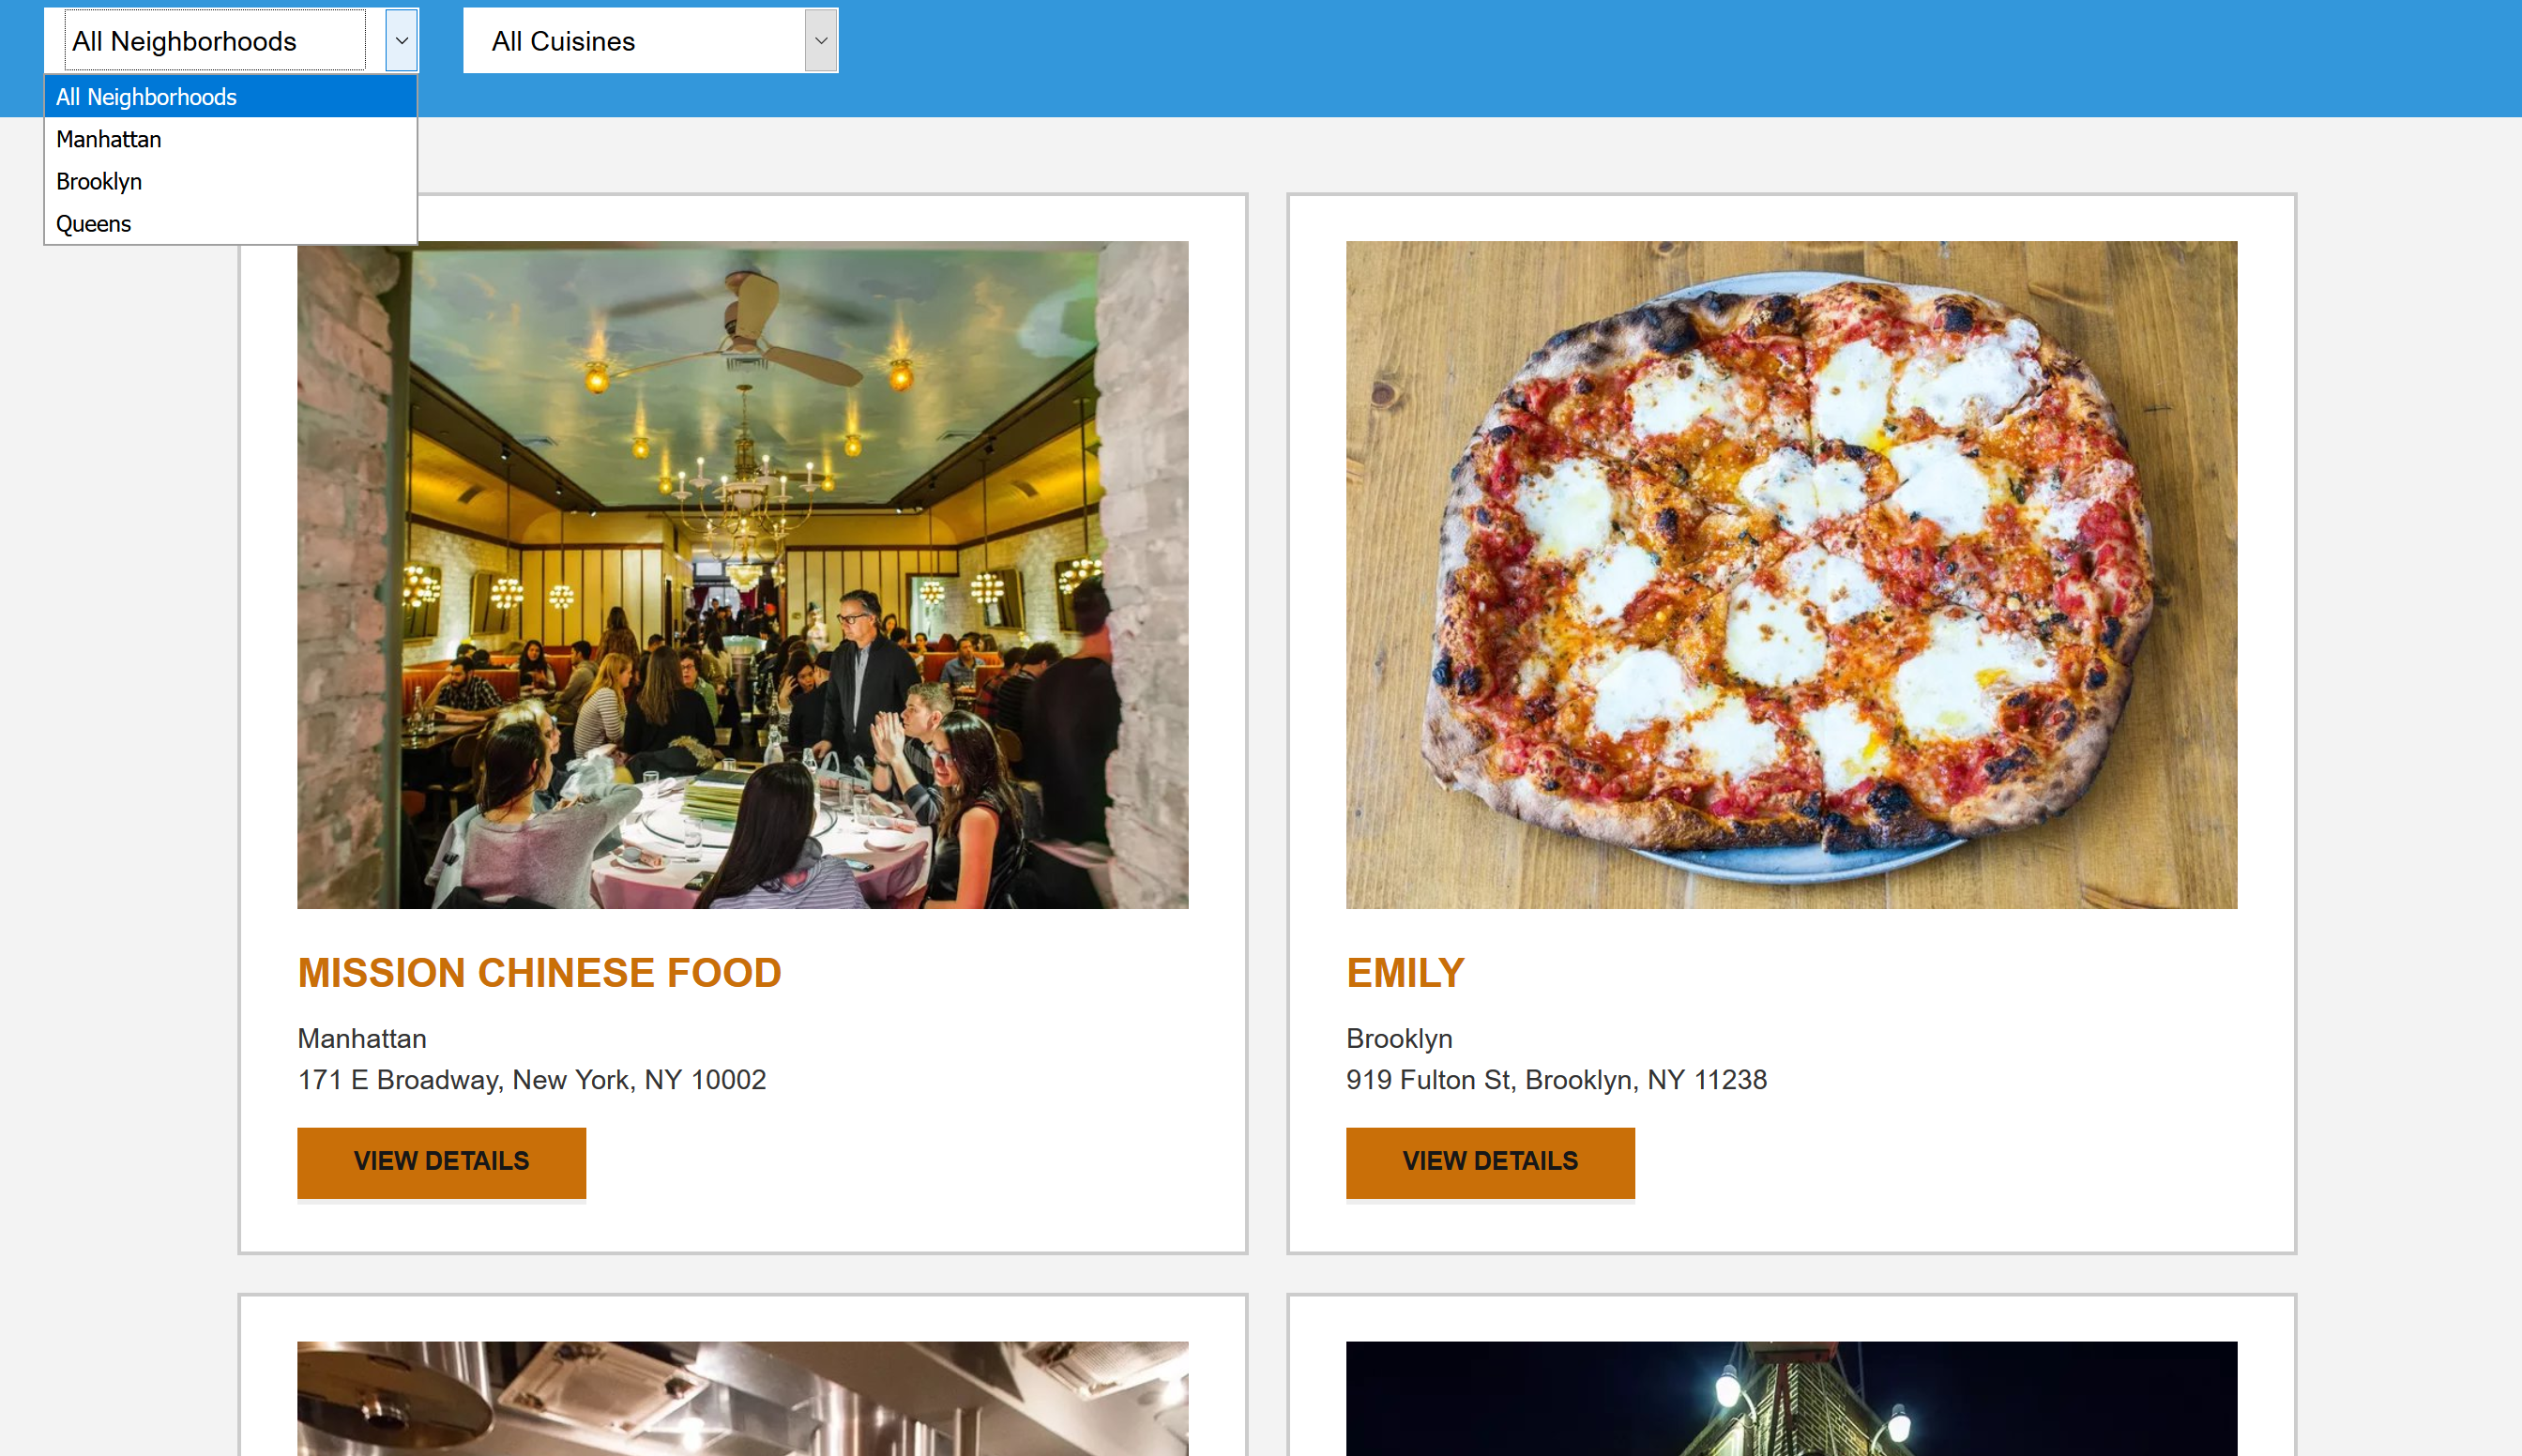 a listing of local restaurants in the New York area